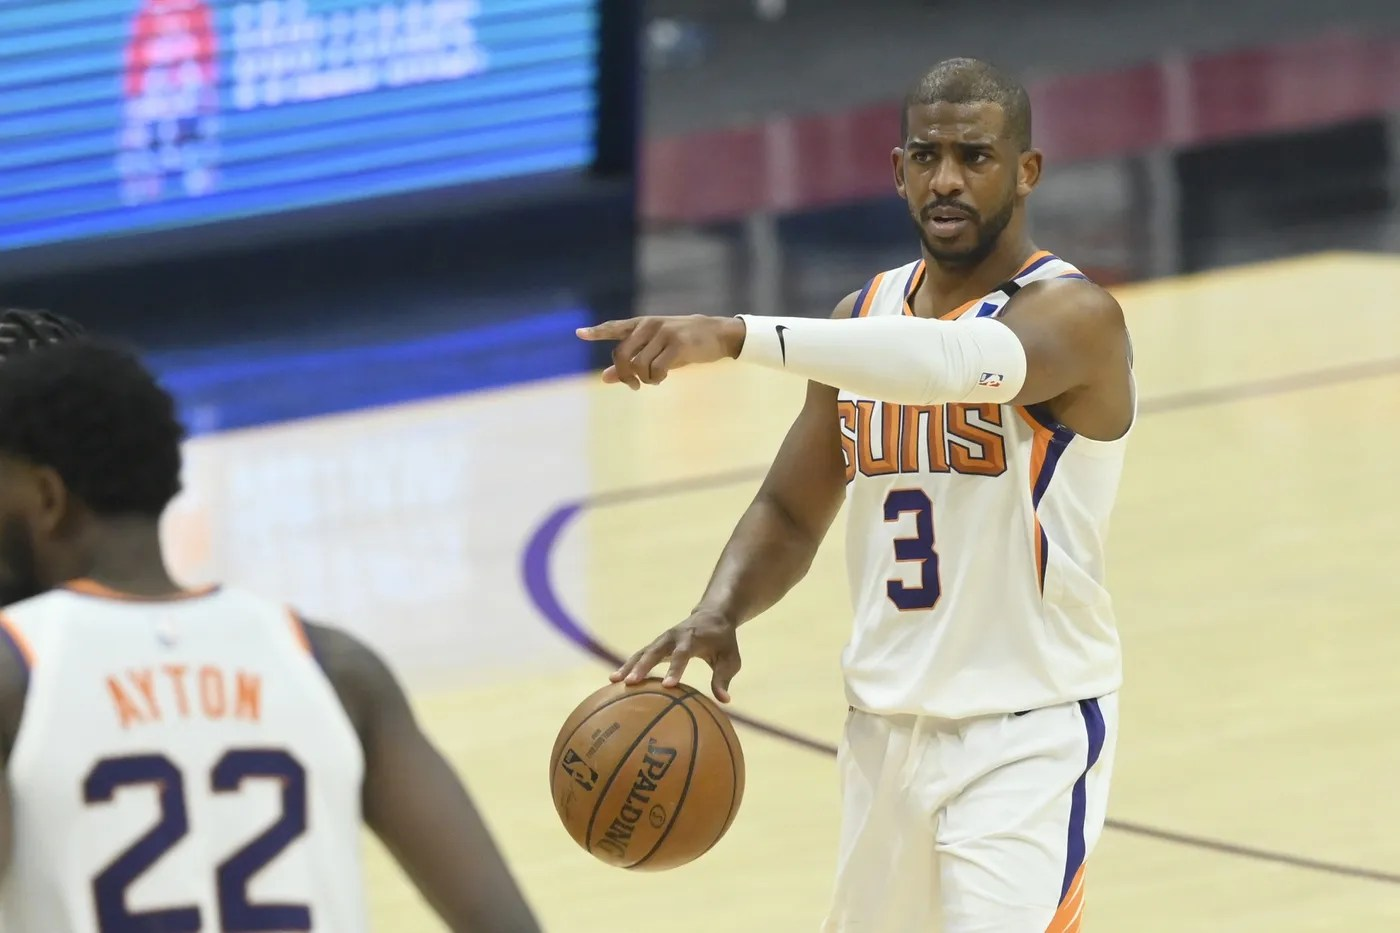 May 4, 2021; Cleveland, Ohio, USA; Phoenix Suns guard Chris Paul (3) calls a play in the second quarter against the Cleveland Cavaliers at Rocket Mortgage FieldHouse. Mandatory Credit: David Richard-USA TODAY Sports